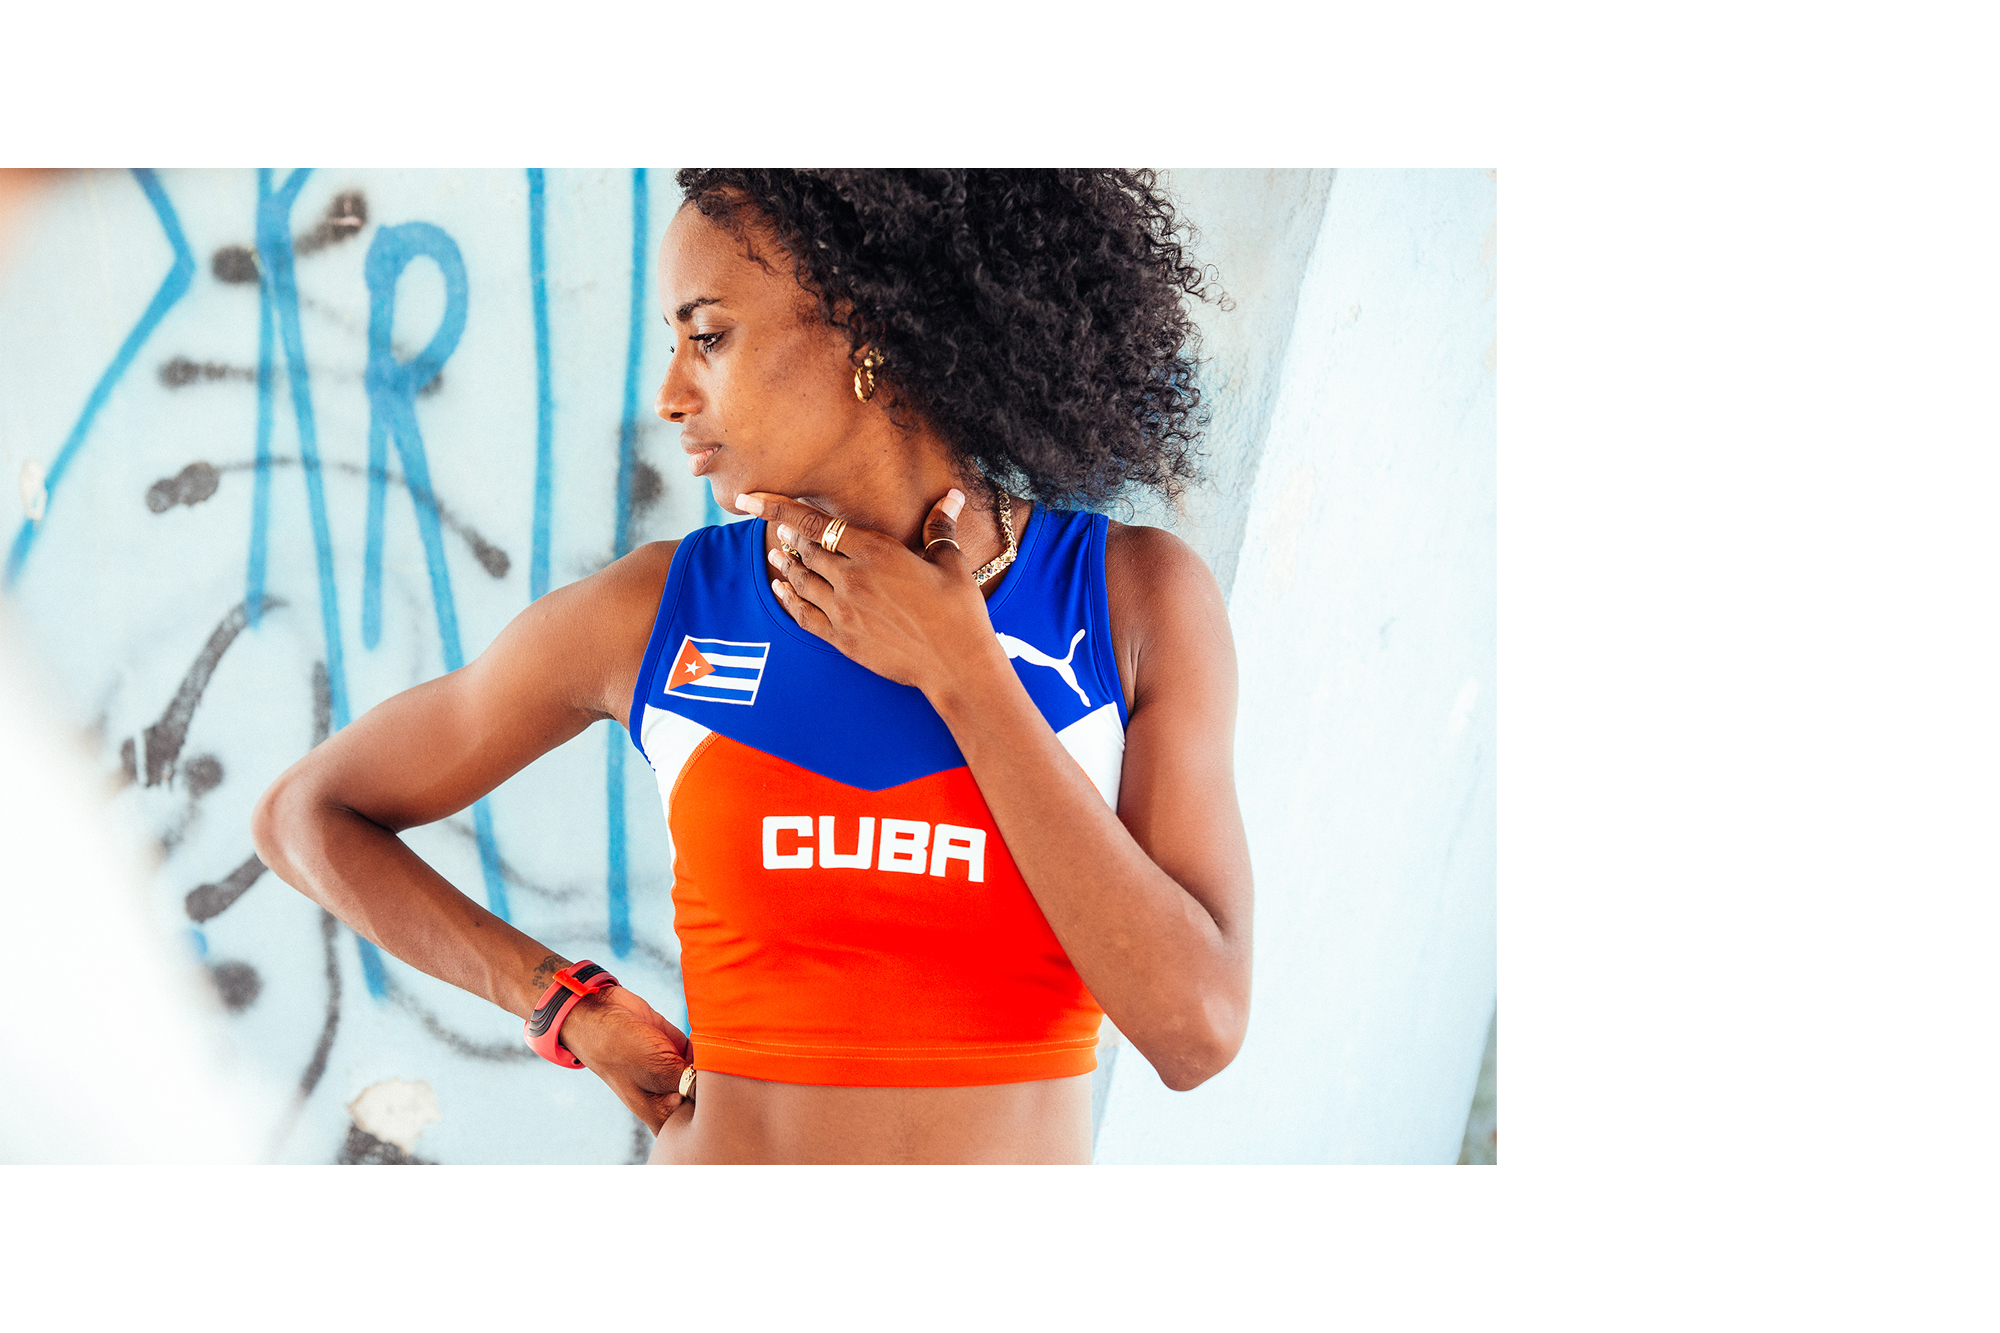 PUMA Running cuba havana track and field olympics